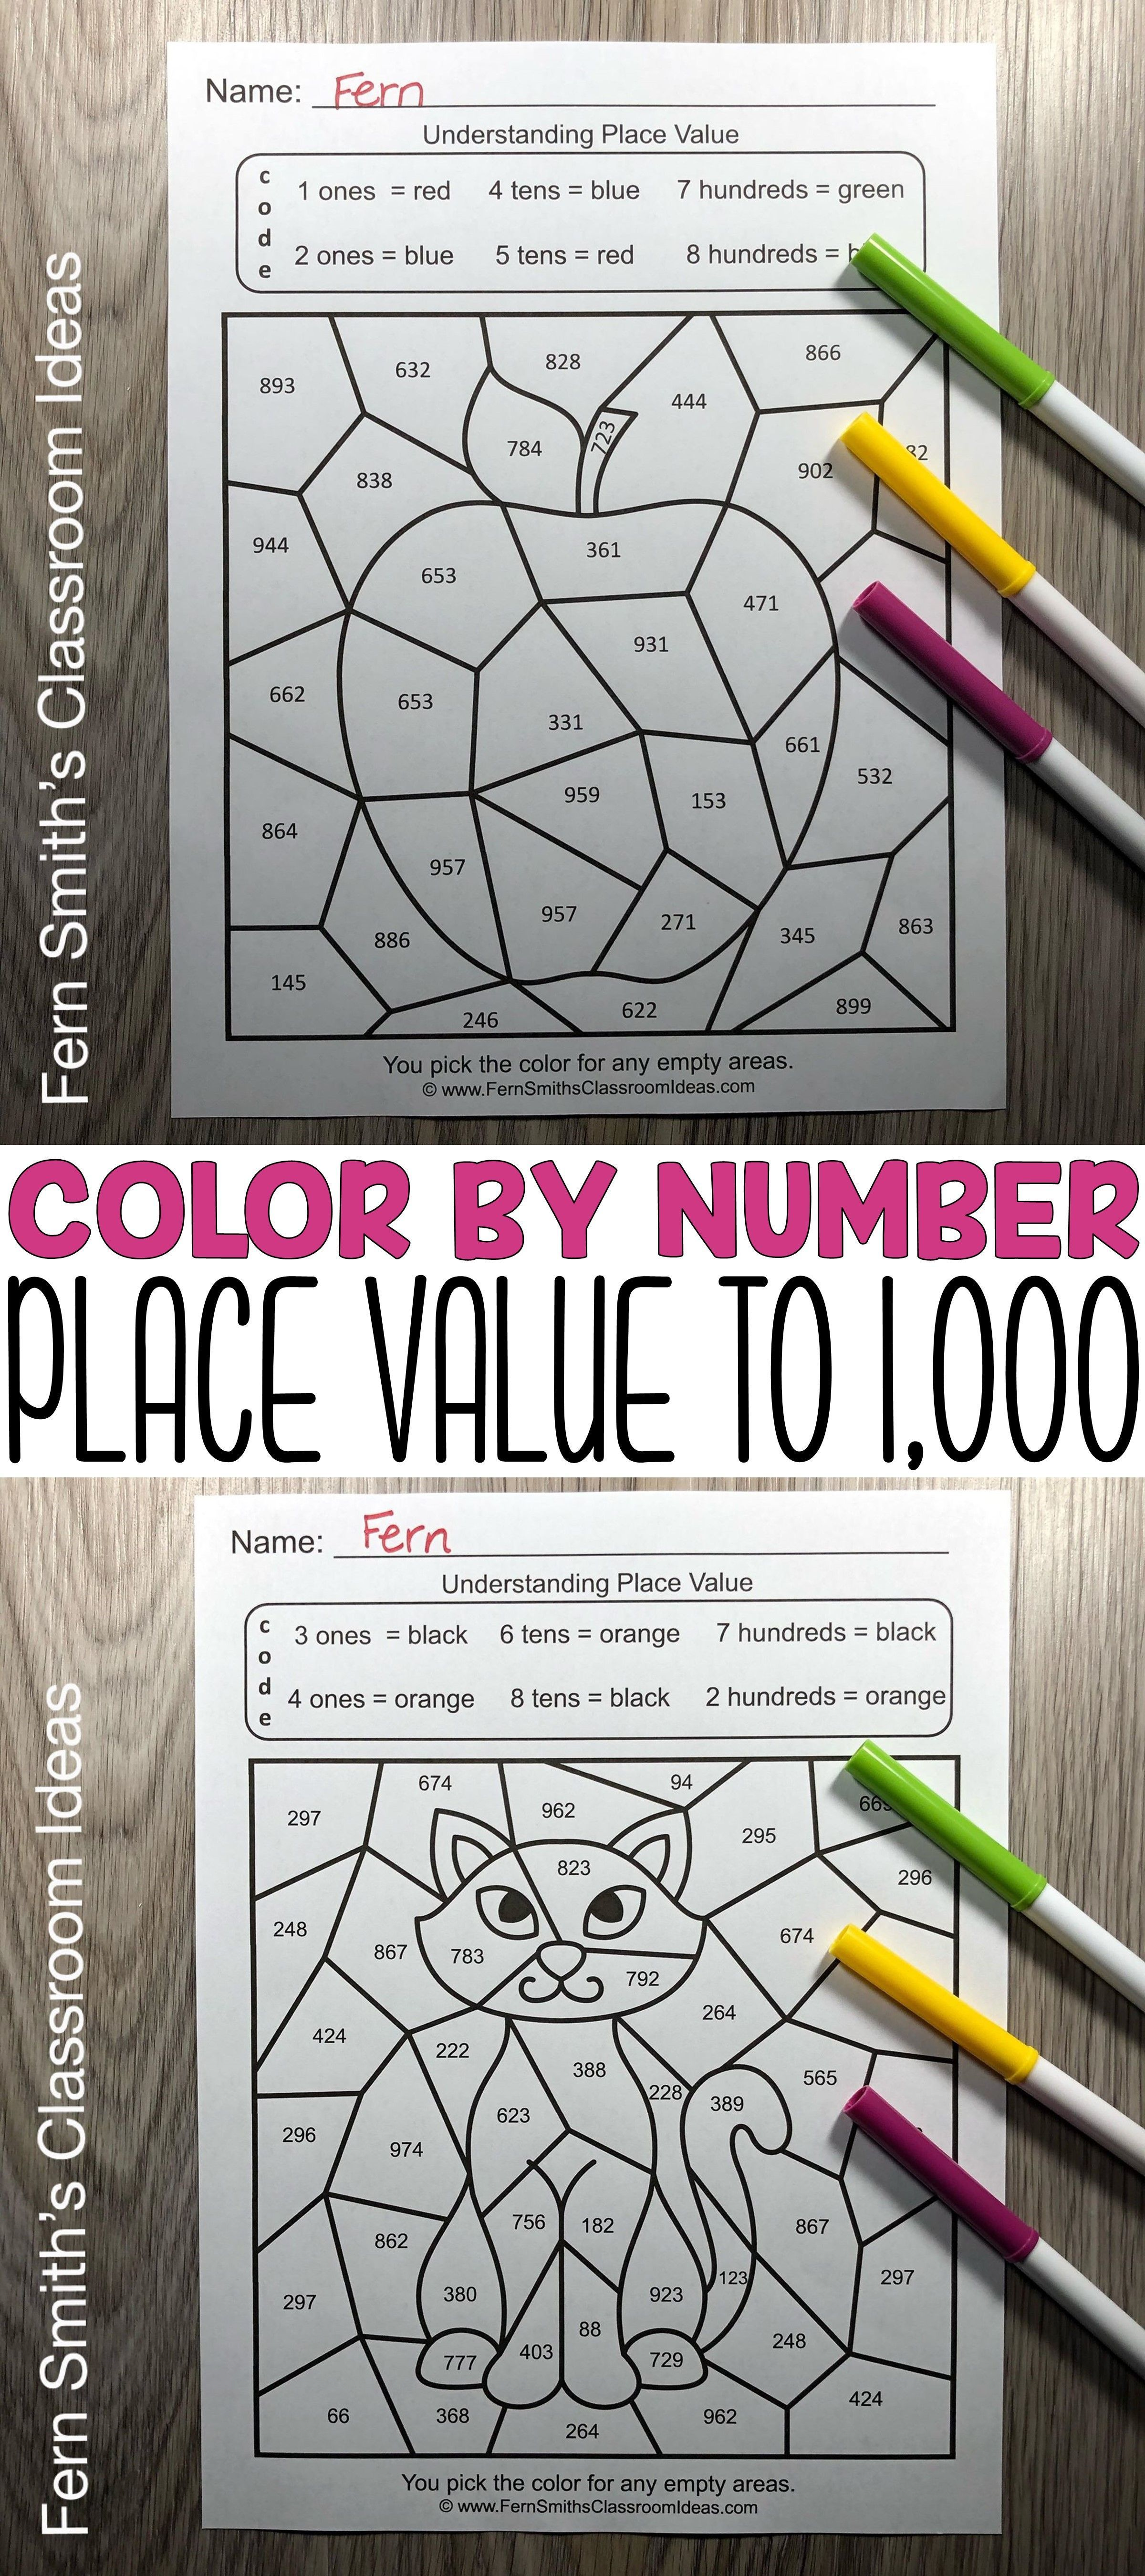 2nd Grade Go Math 2 5 Place Value To 1 000 Color By Number